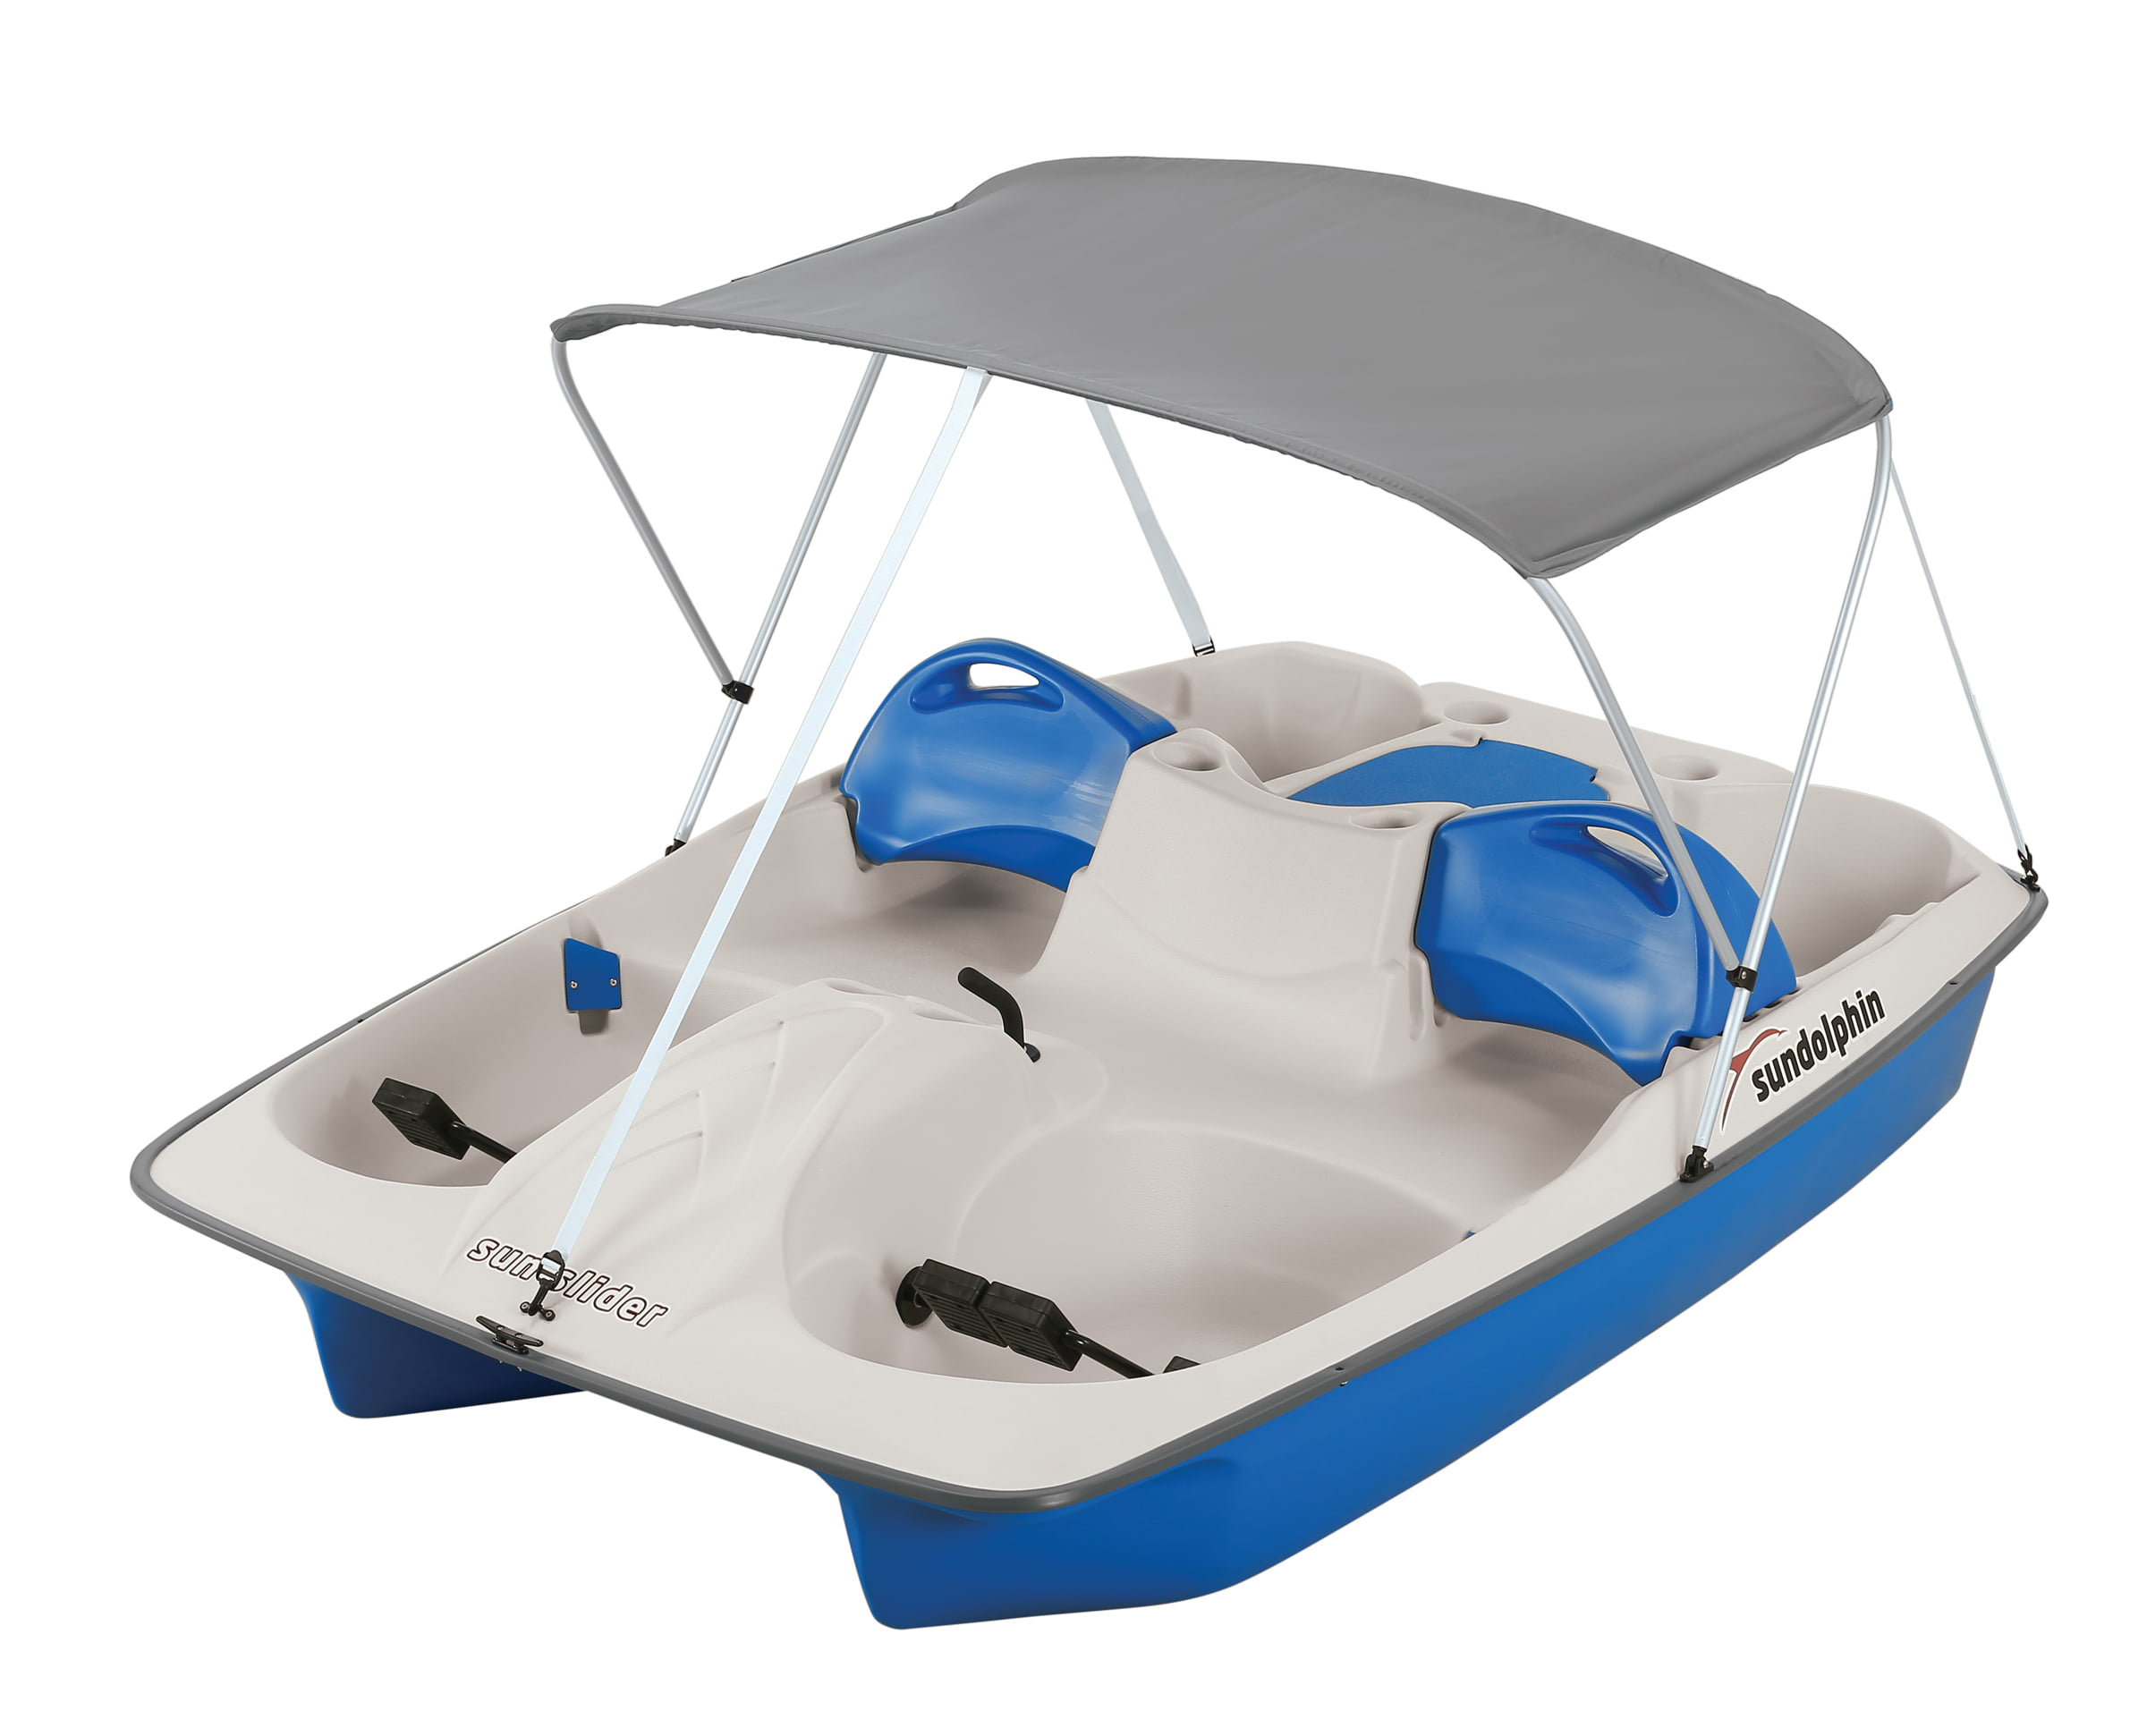 Click here to buy Sun Dolphin 5-Person Sun Slider Pedal Boat with Canopy, Blue by KL Outdoor.